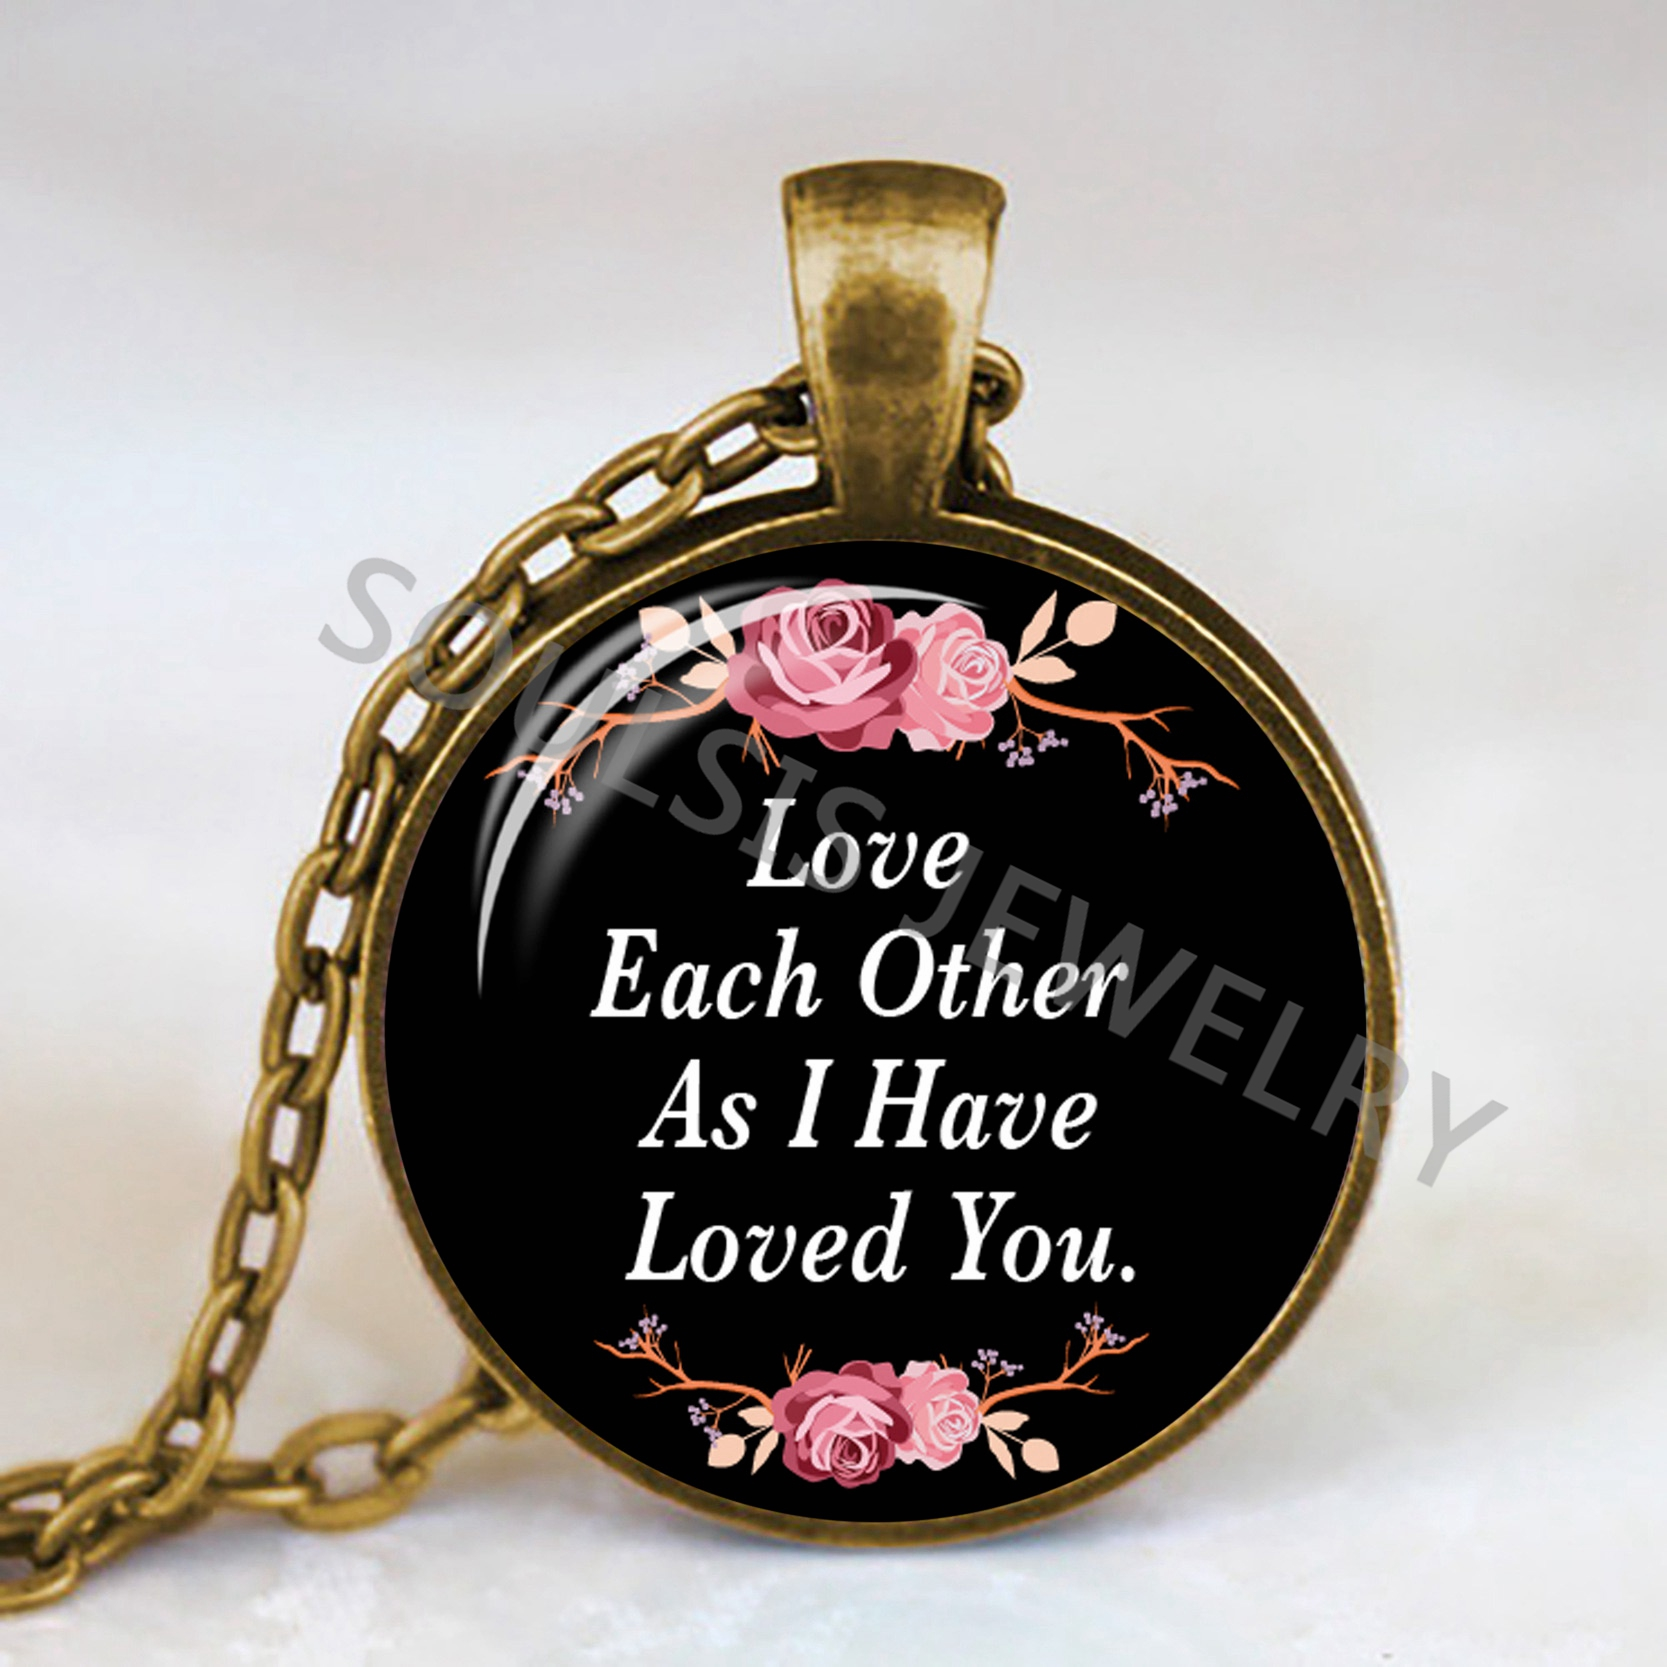 Love Each Other As I Have Loved You: New Fashion Bible Verse Necklace Love Each Other As I Have